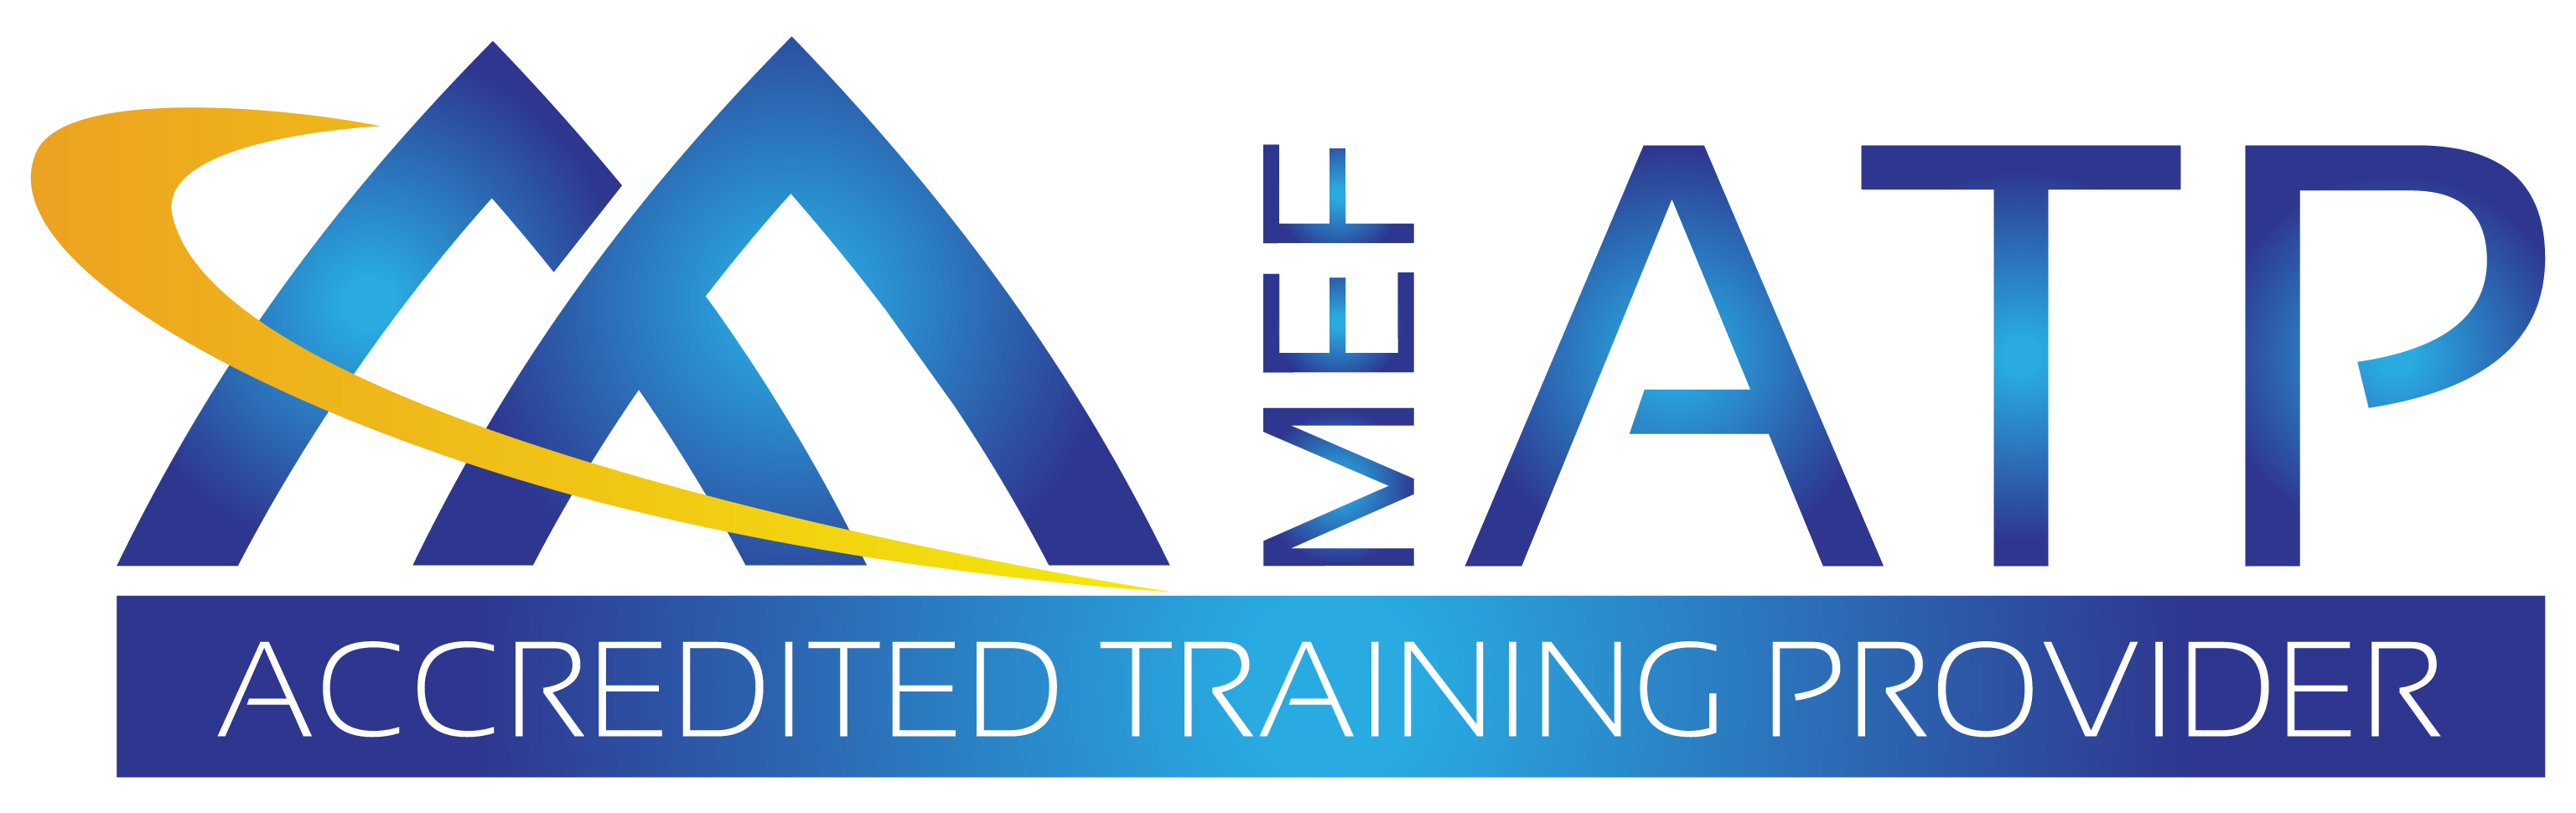 MEF_Official_MEF-ATP_Logo_Gradient_Yellow_Blue_RGB_Dec-11-2017-01-1